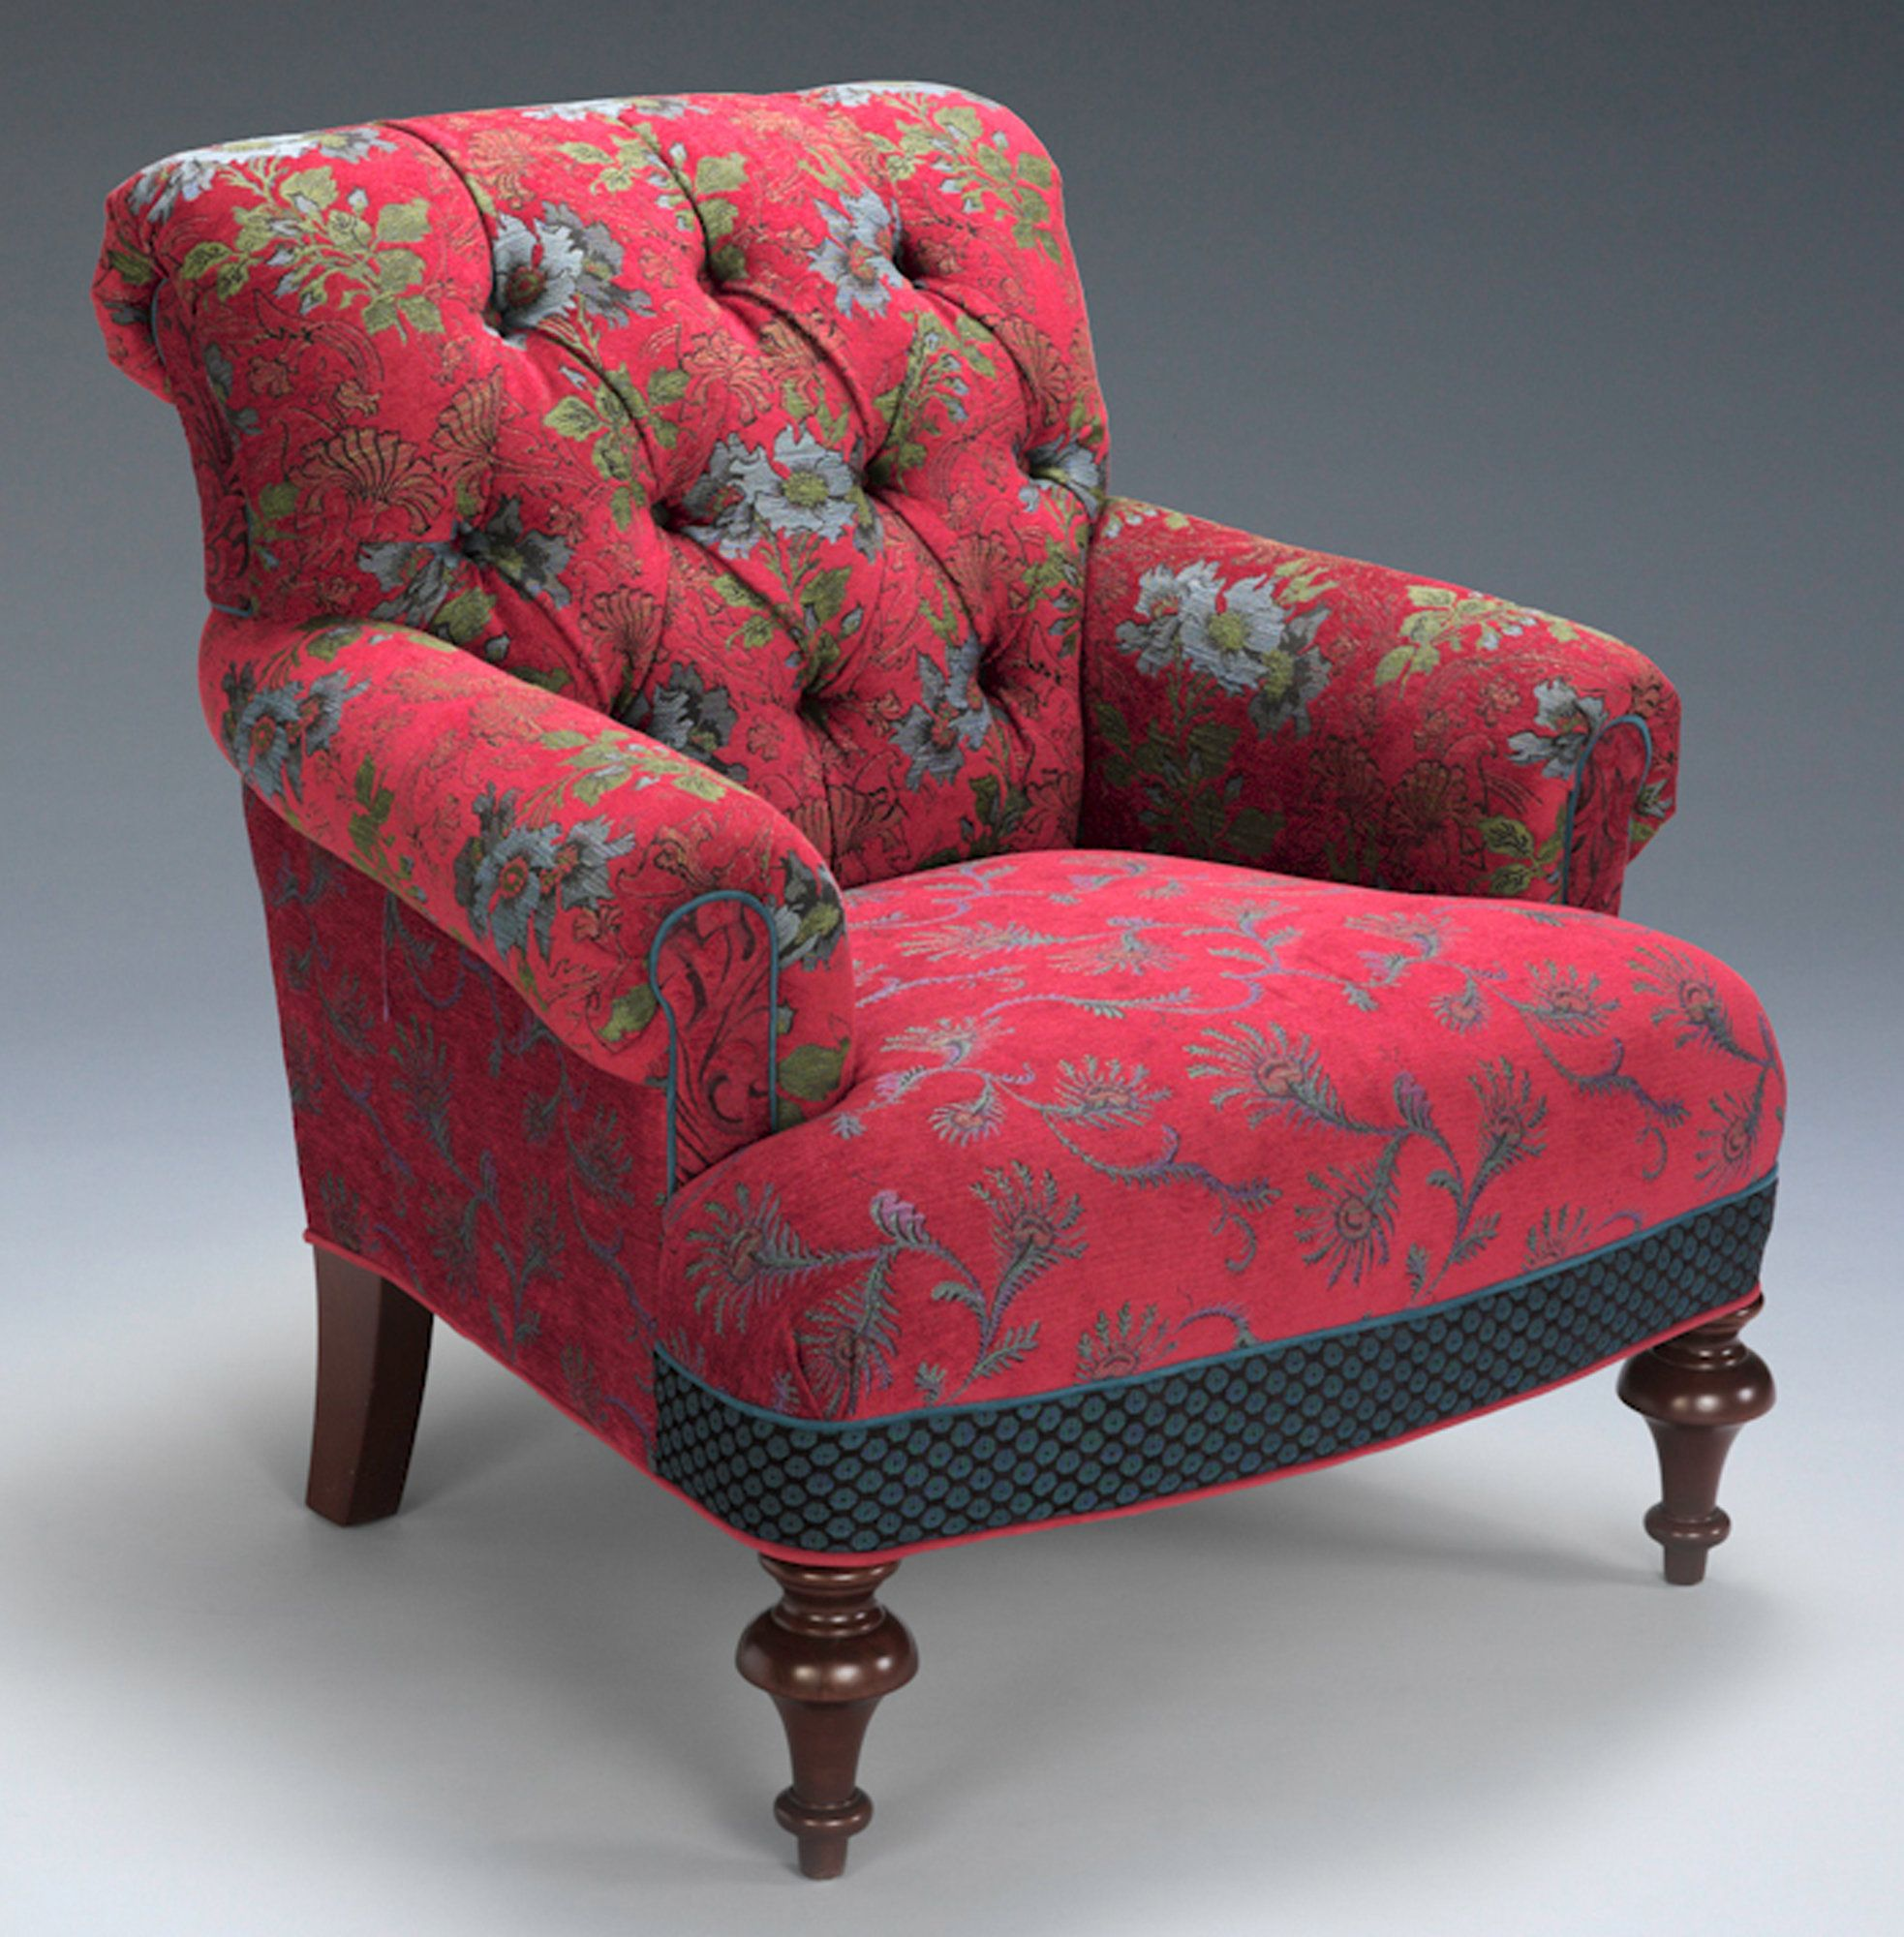 Middlebury Chair in Red Wine by Mary Lynn O\'Shea (Upholstered ...